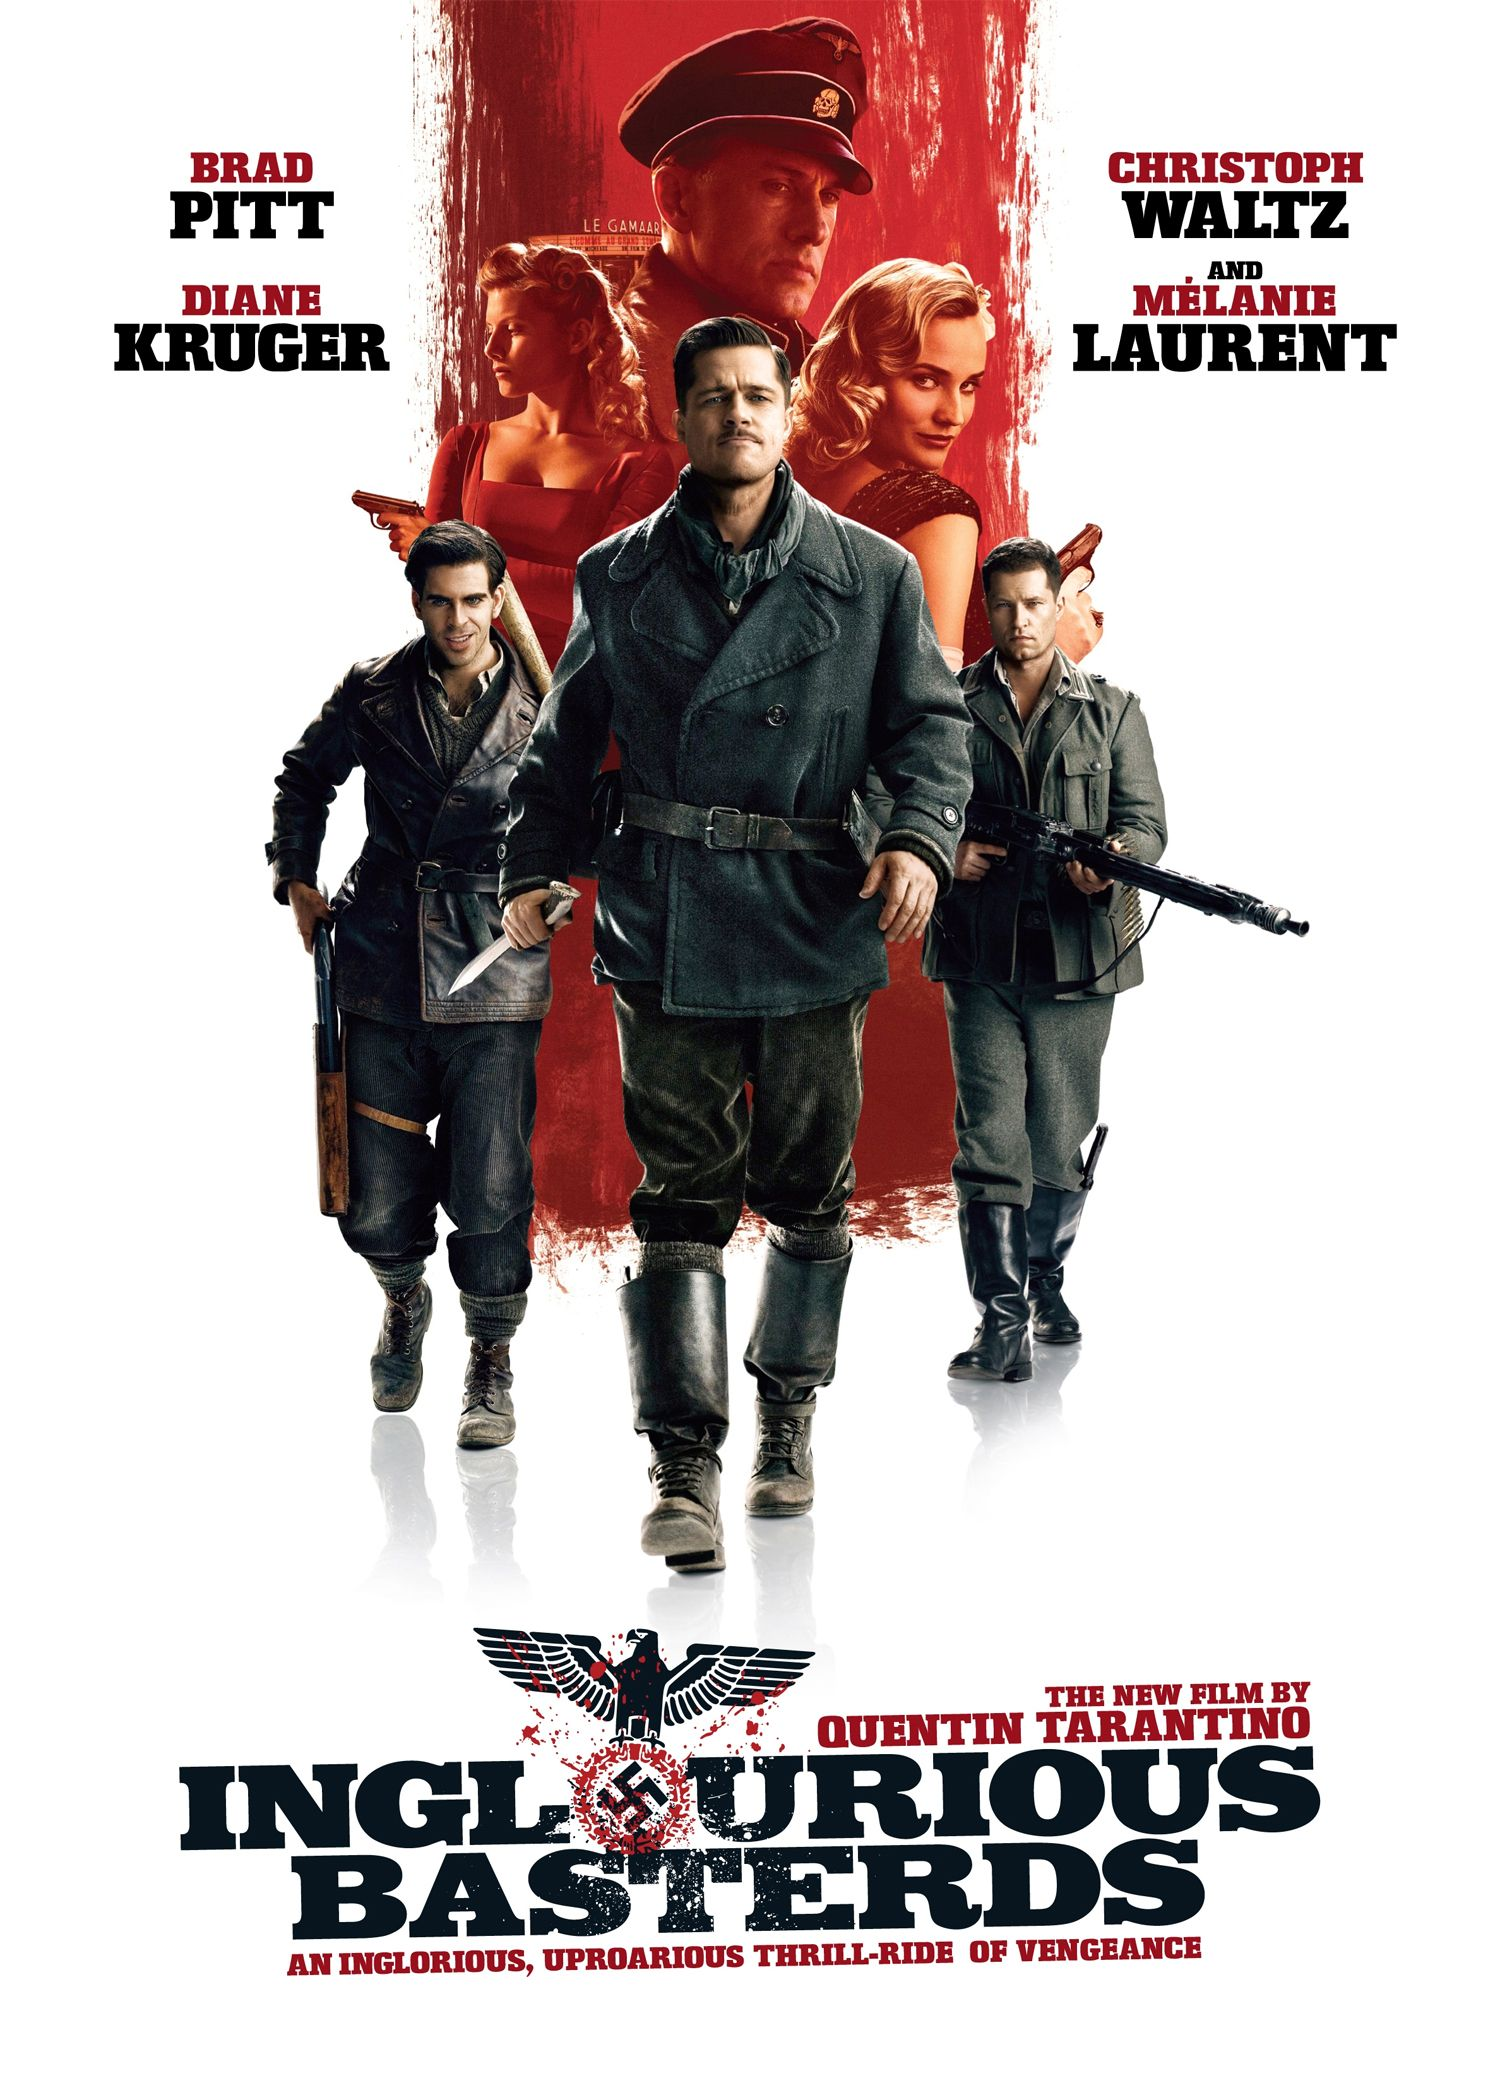 Image result for inglourious basterds movie poster